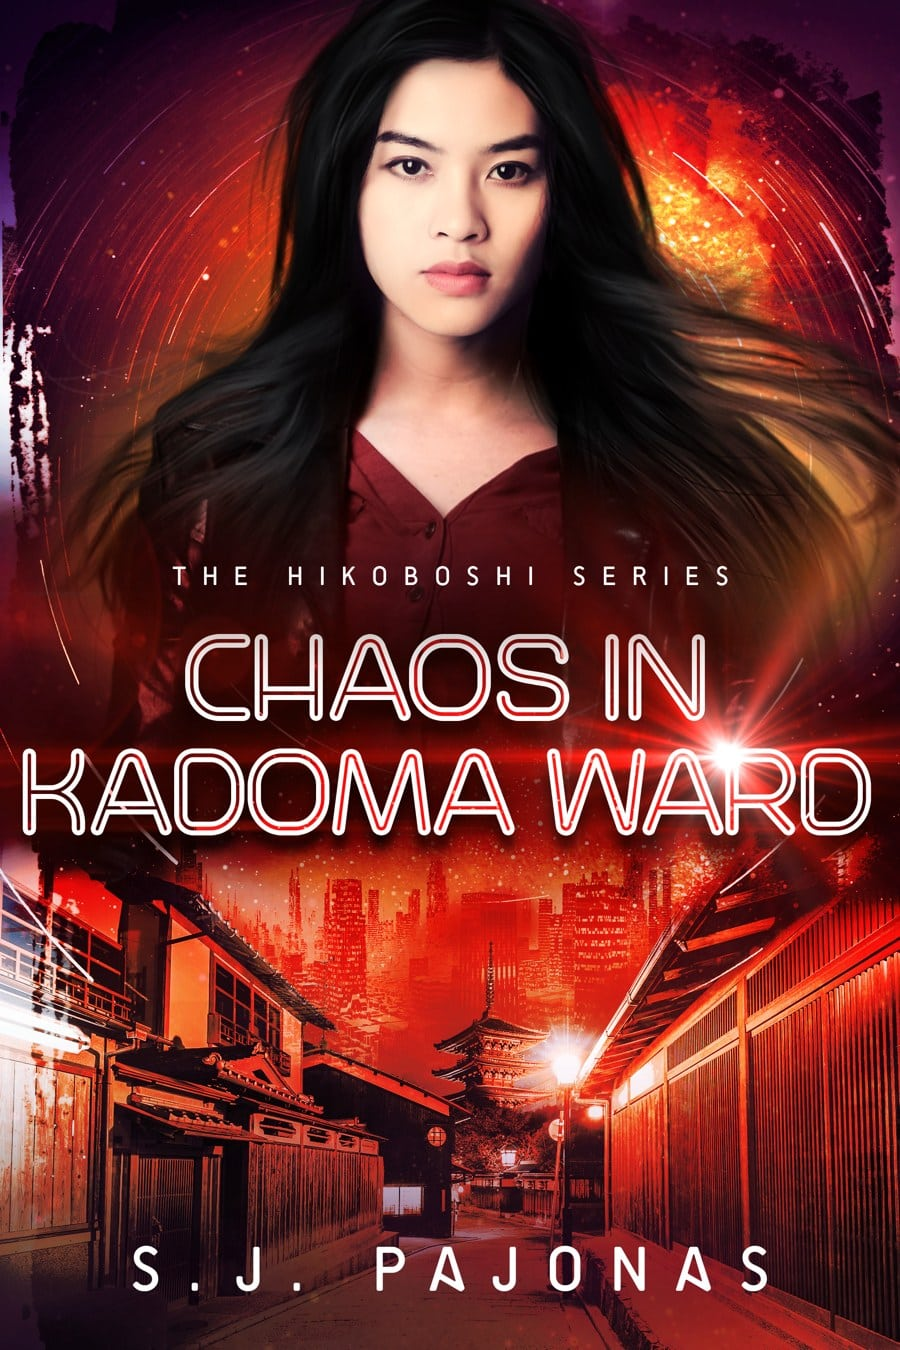 See the cover, read the blurb, and pre-order CHAOS IN KADOMA WARD, the second book of the Hikoboshi Series!